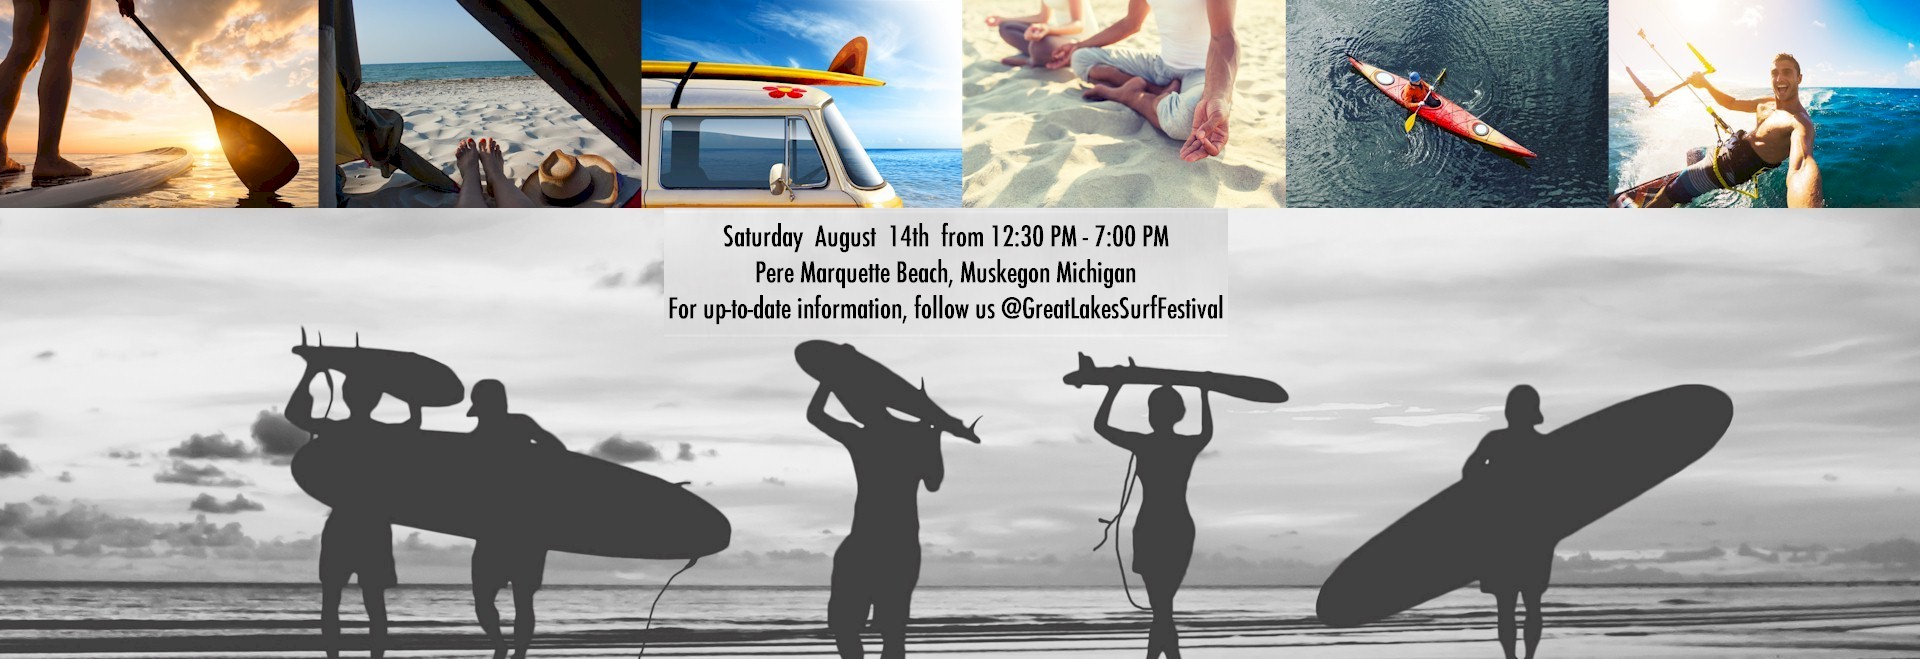 Great Lakes Surf Festival